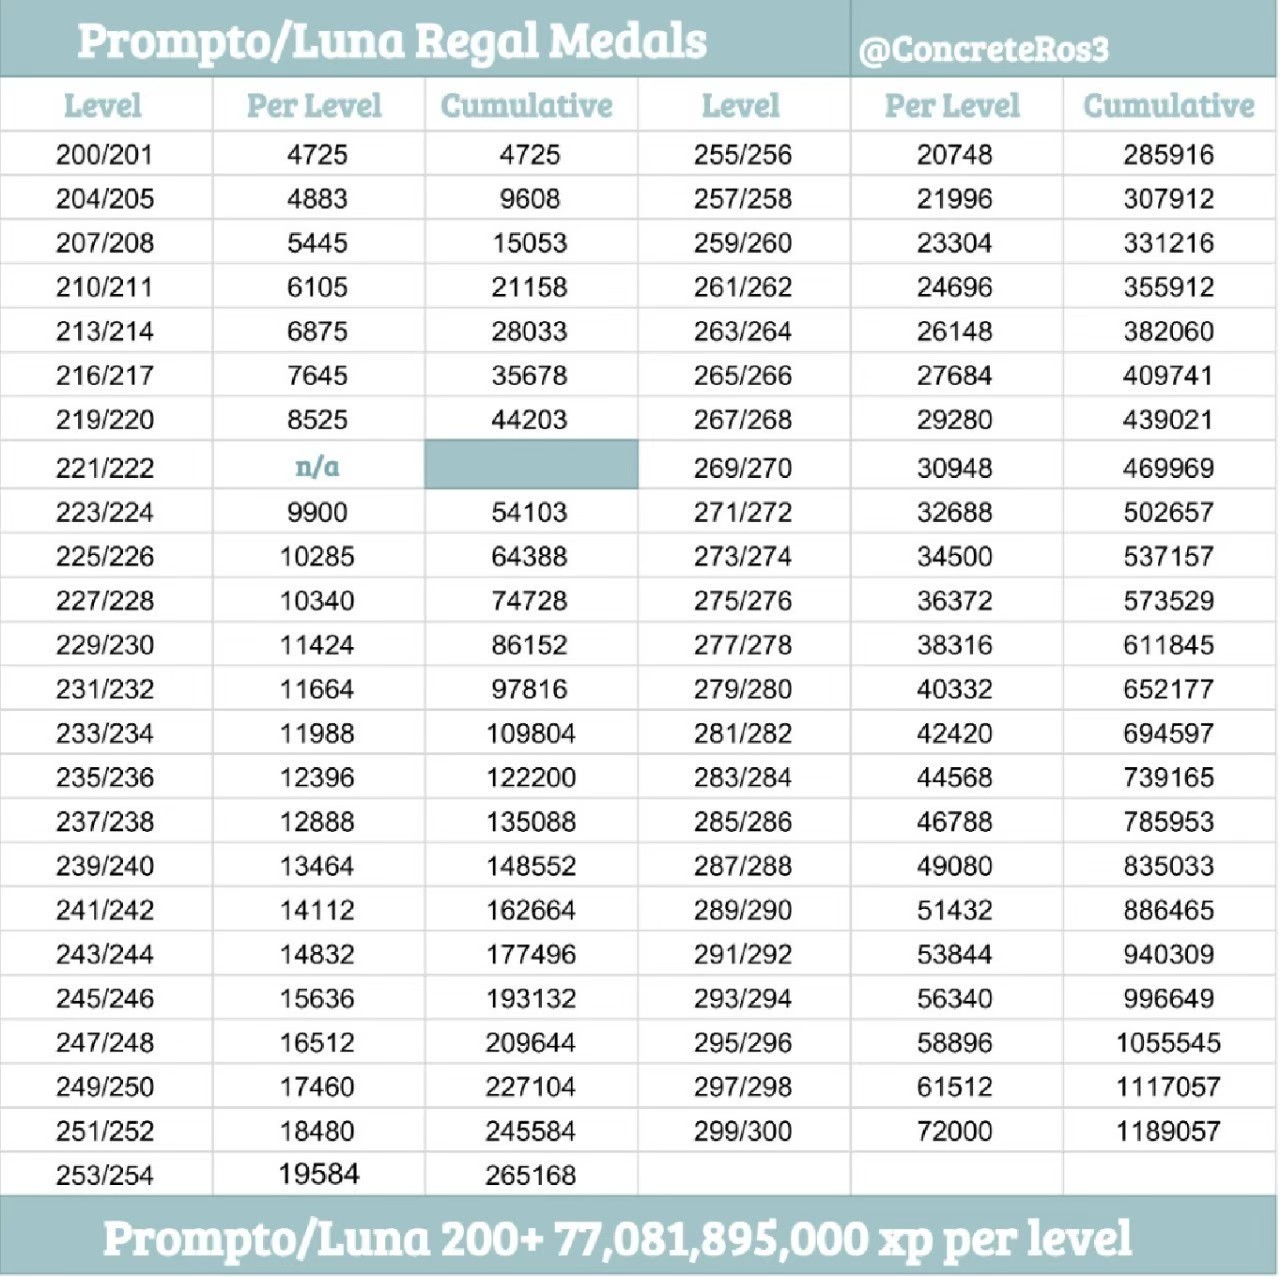 Luna and Prompto Medals